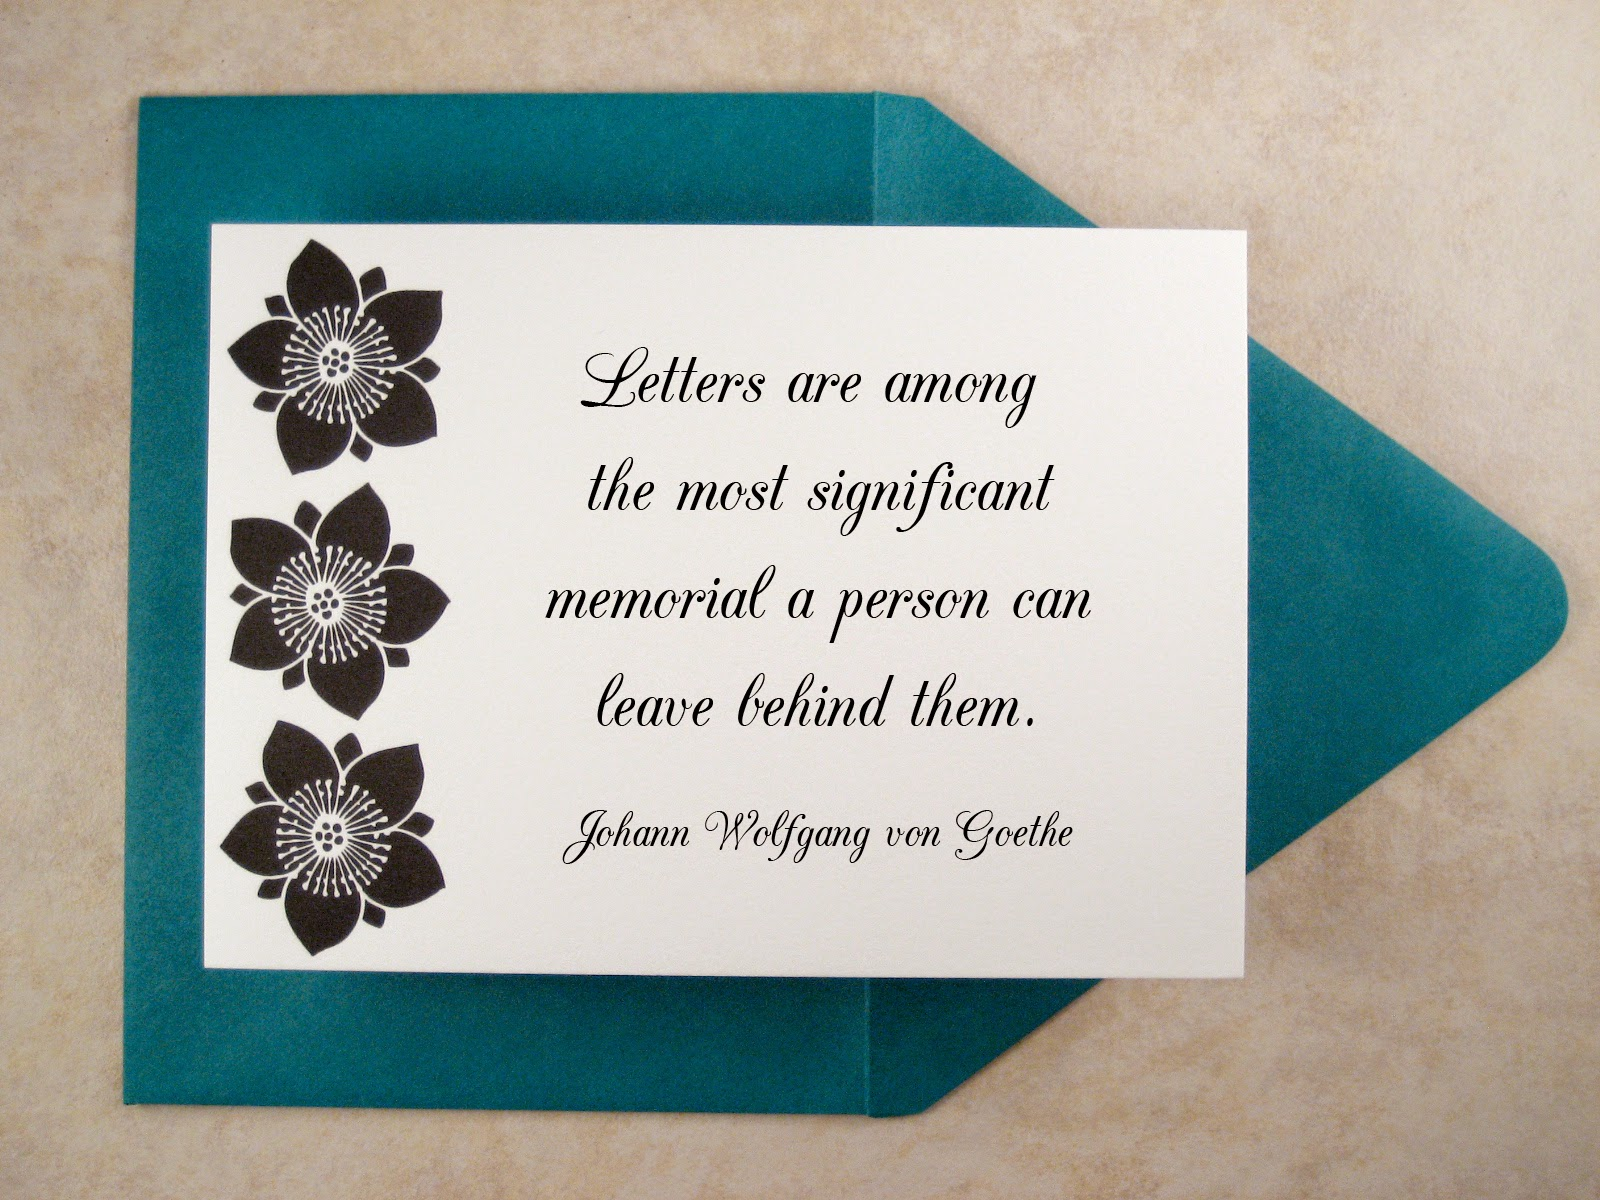 Letters are among the most significant memorial a person can leave behind them. Johann Wolfgang von Goethe